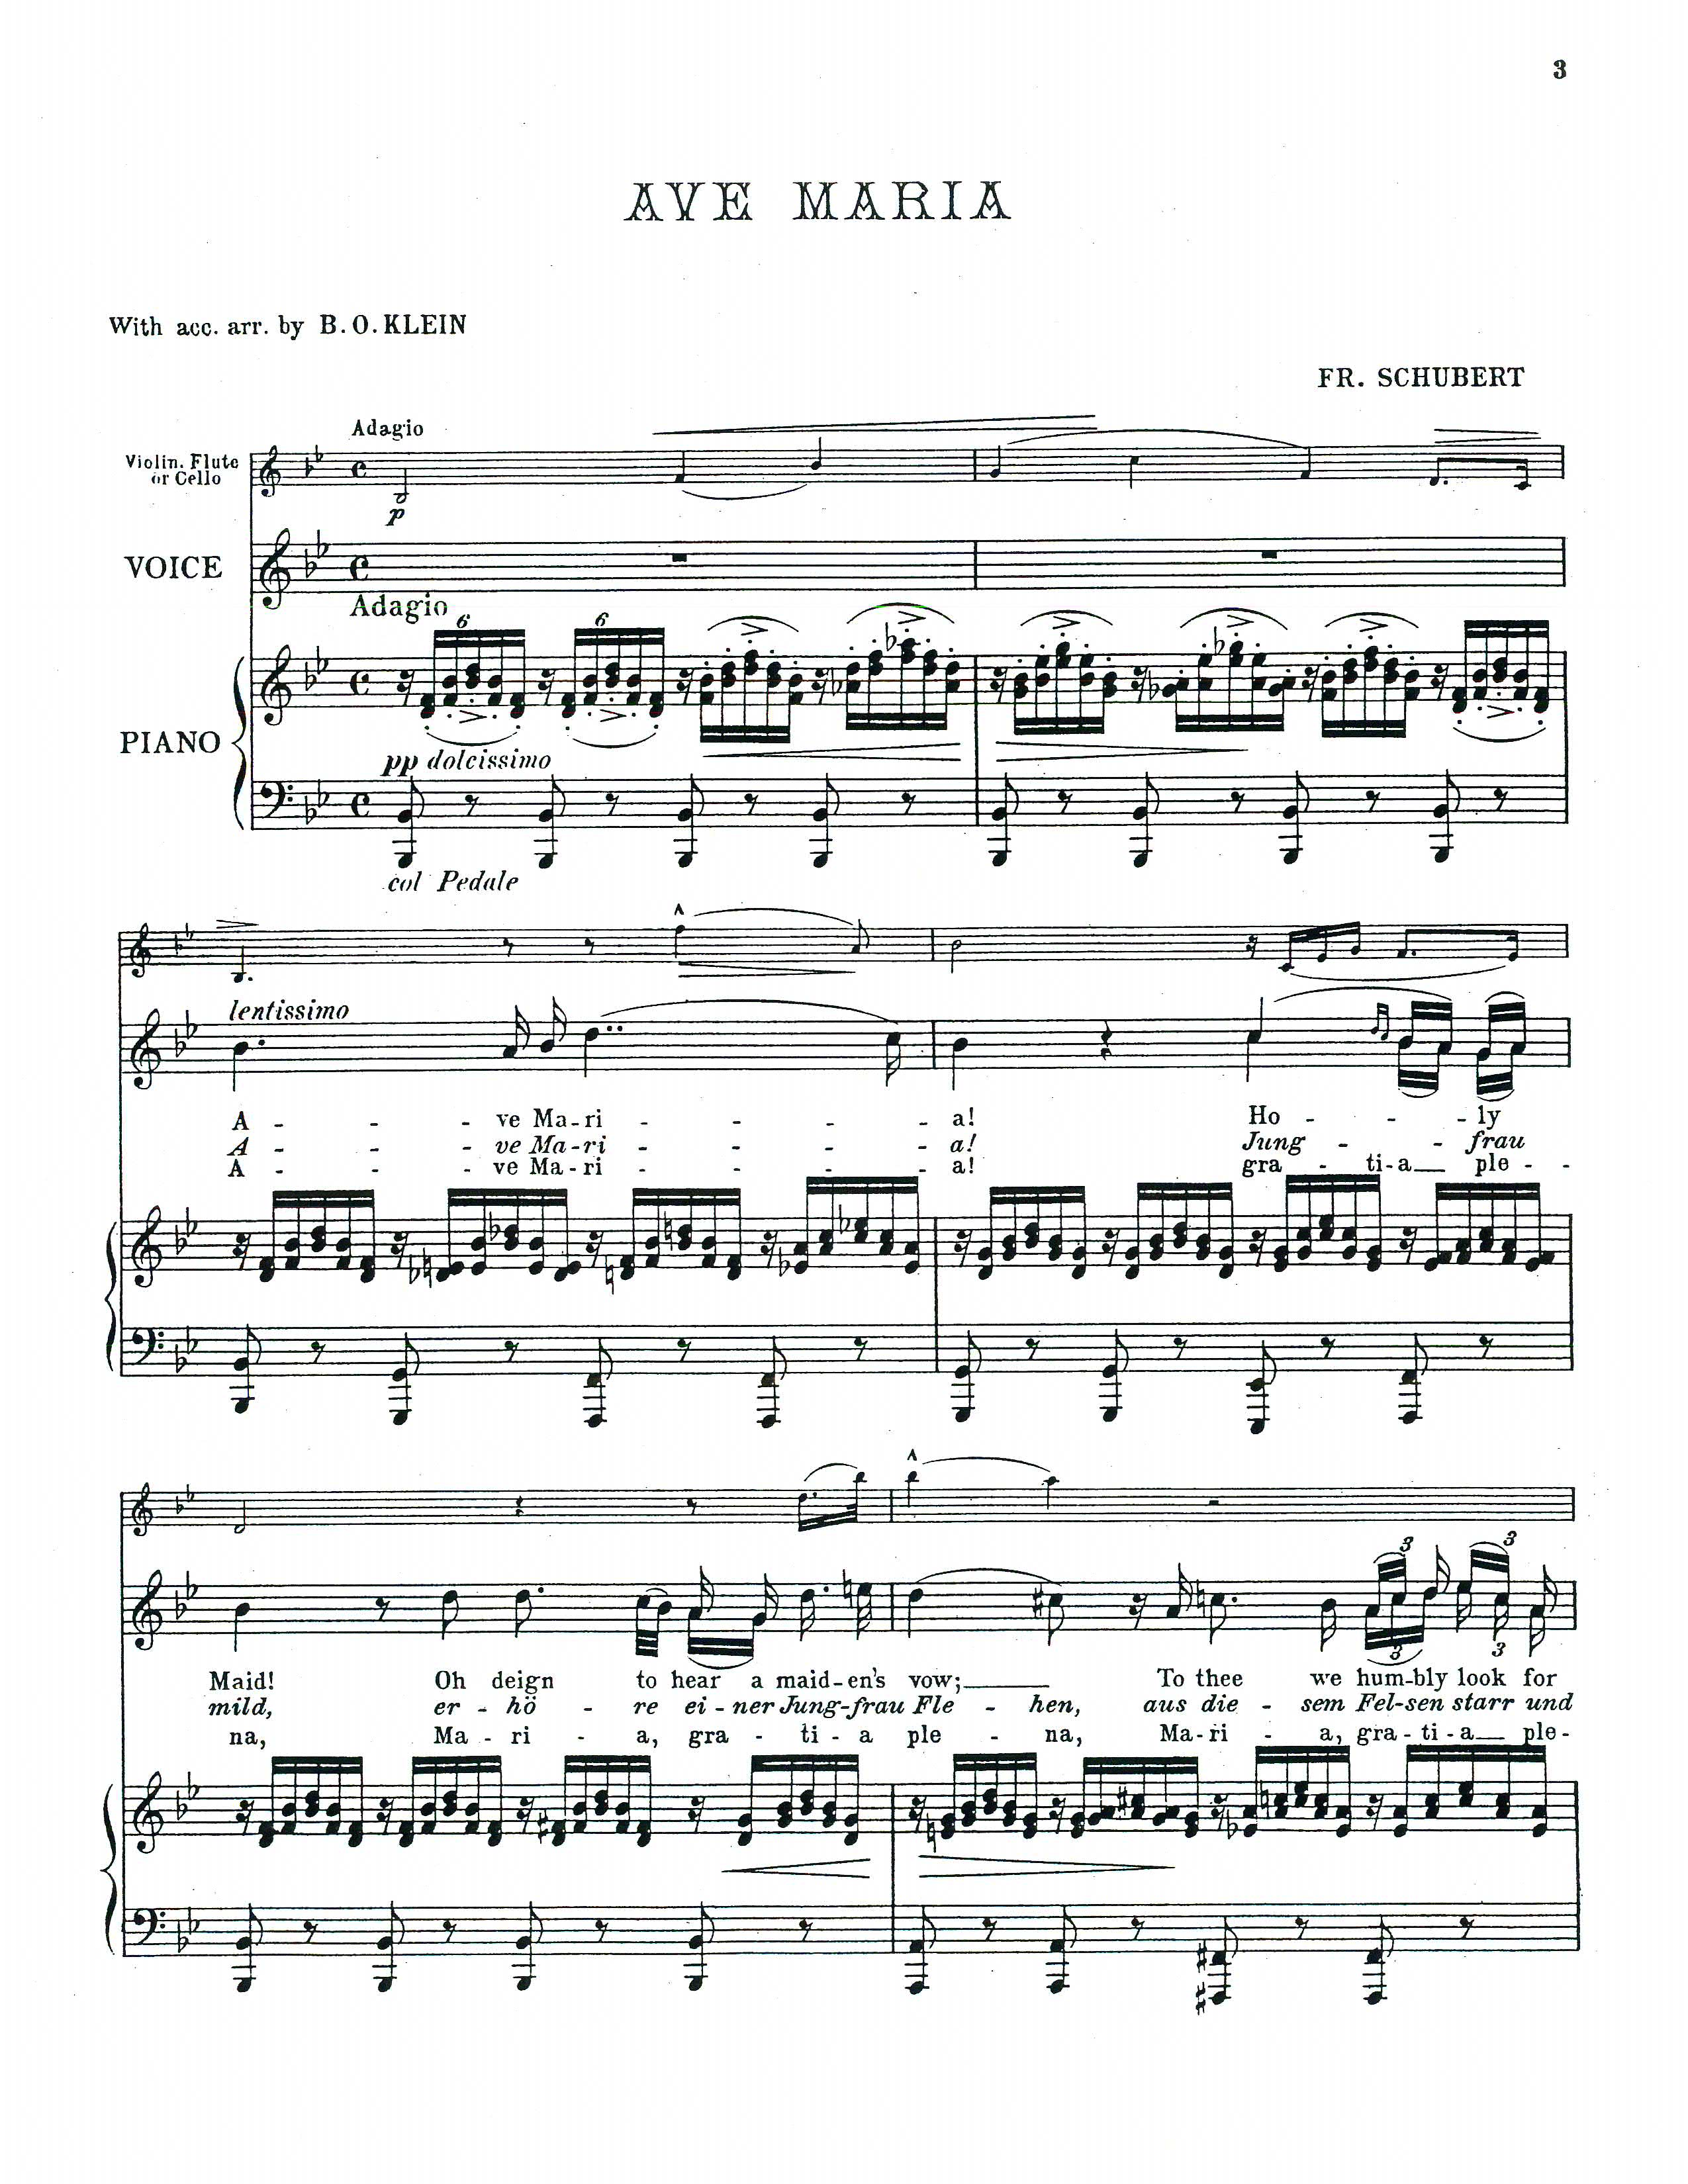 Ave Maria Text Deutsch Hochzeit Classical Vocal Reprints Product Page Sheet Music Pdf